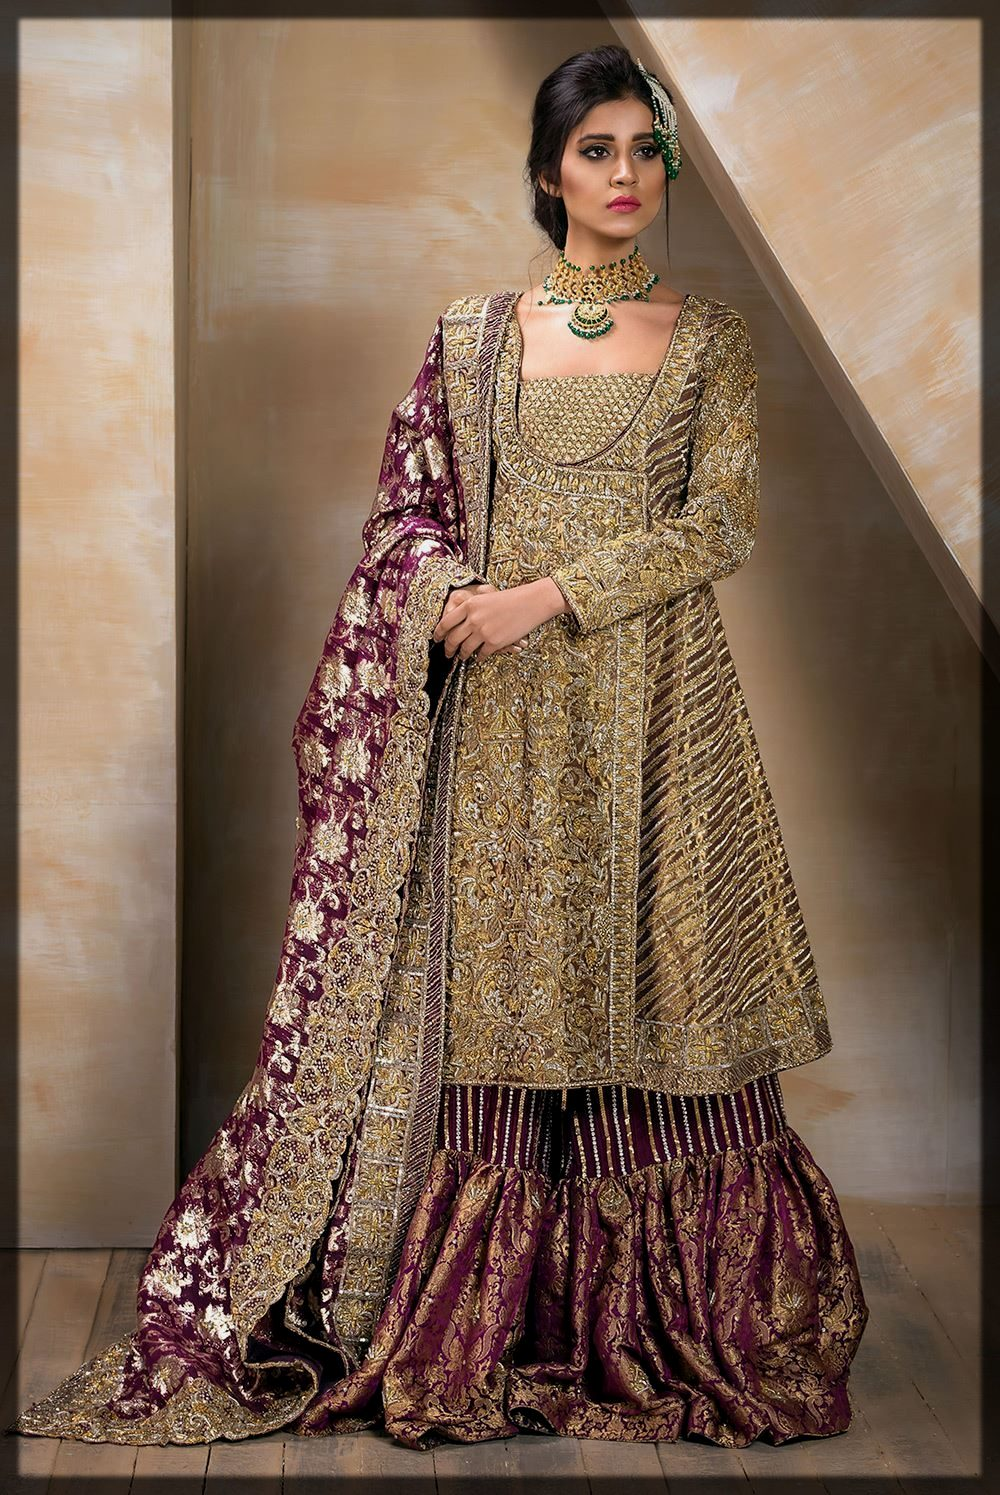 Bronze and Golds Heavily Embellished Mirusah Bridal Outfit